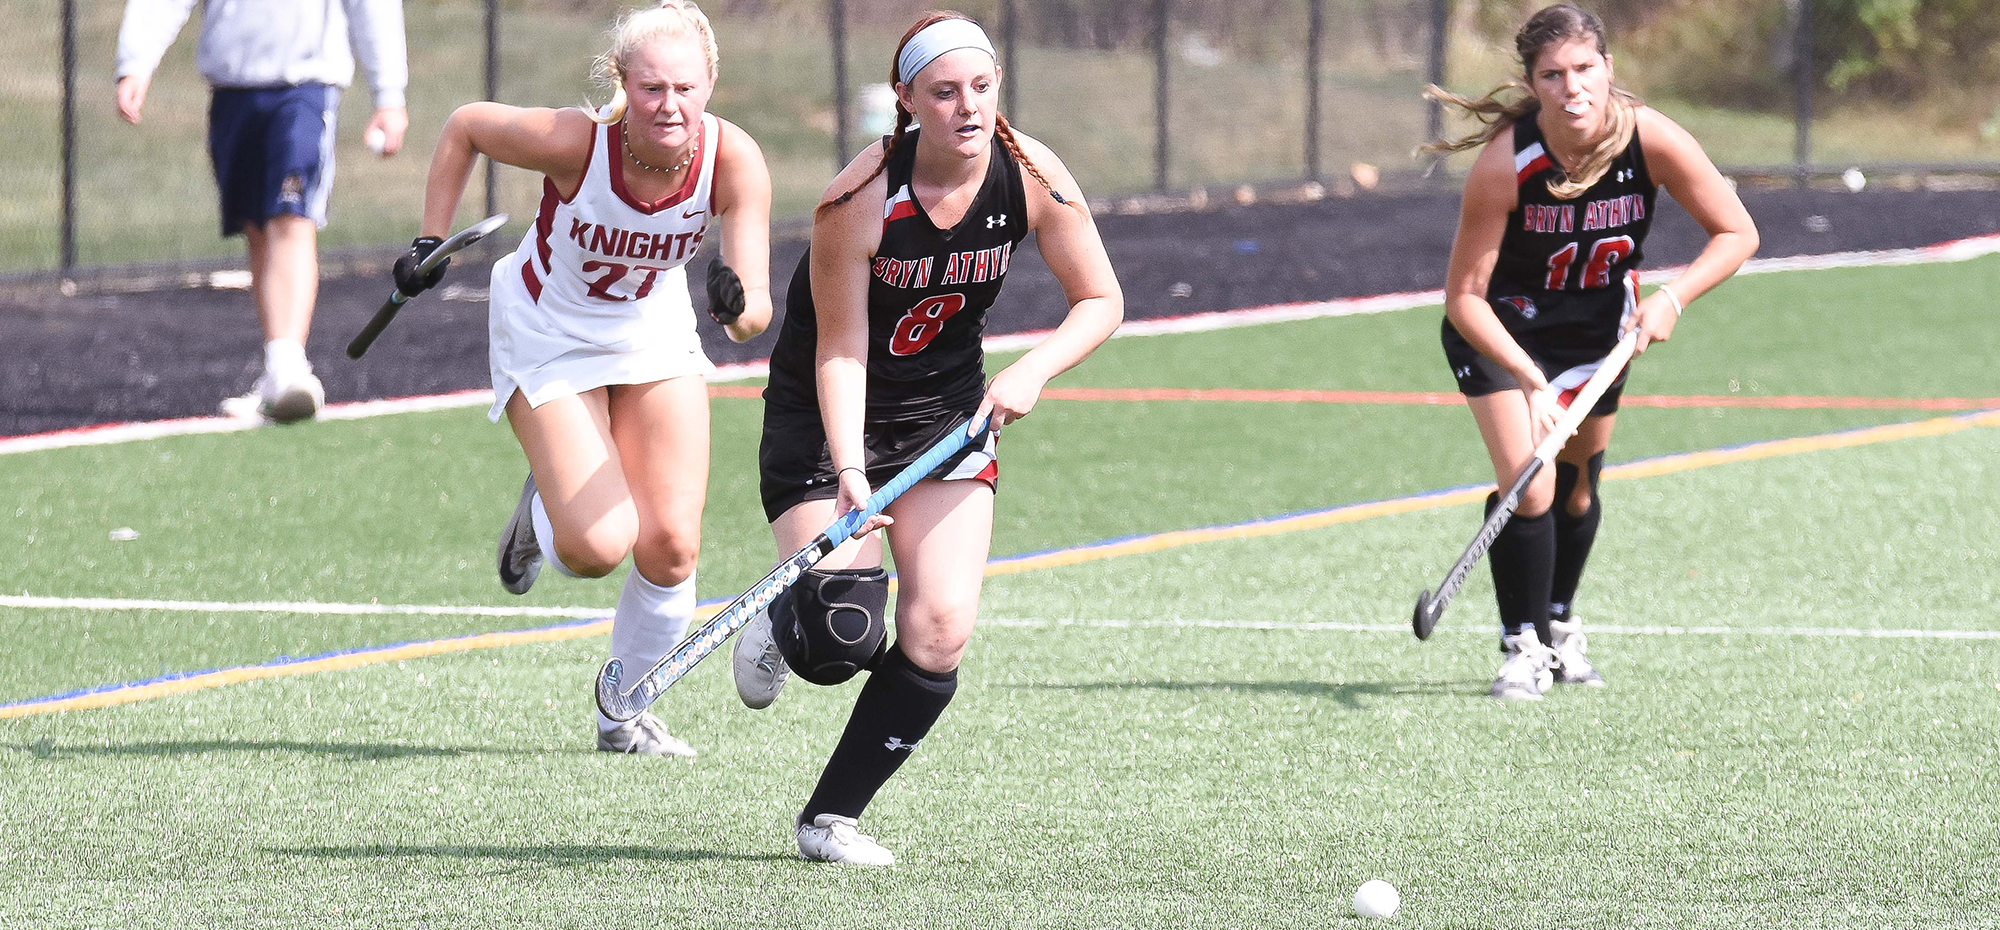 Dubois, Parnell power field hockey past Southern Virginia, 2-1